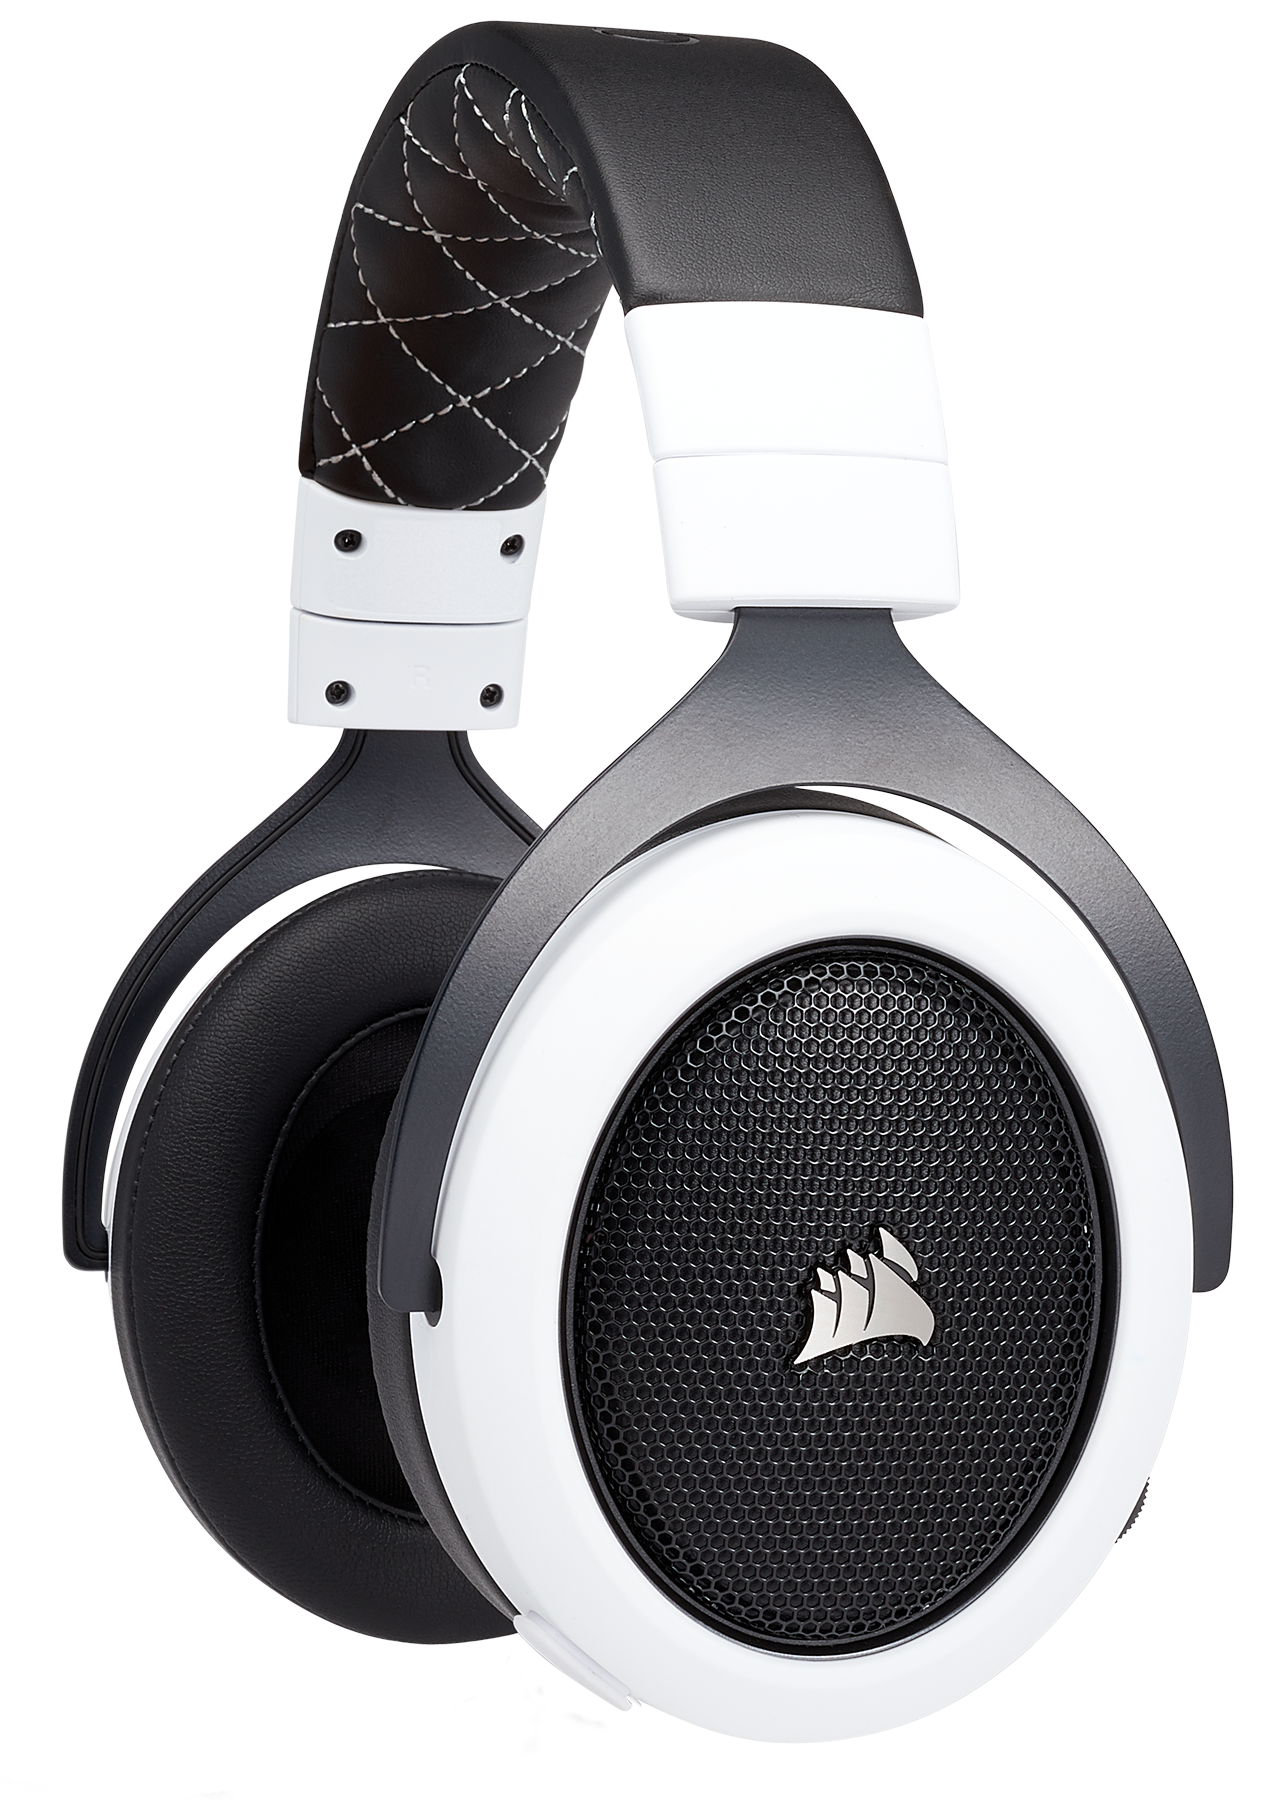 slide 2 of 10,show larger image, produktbillede